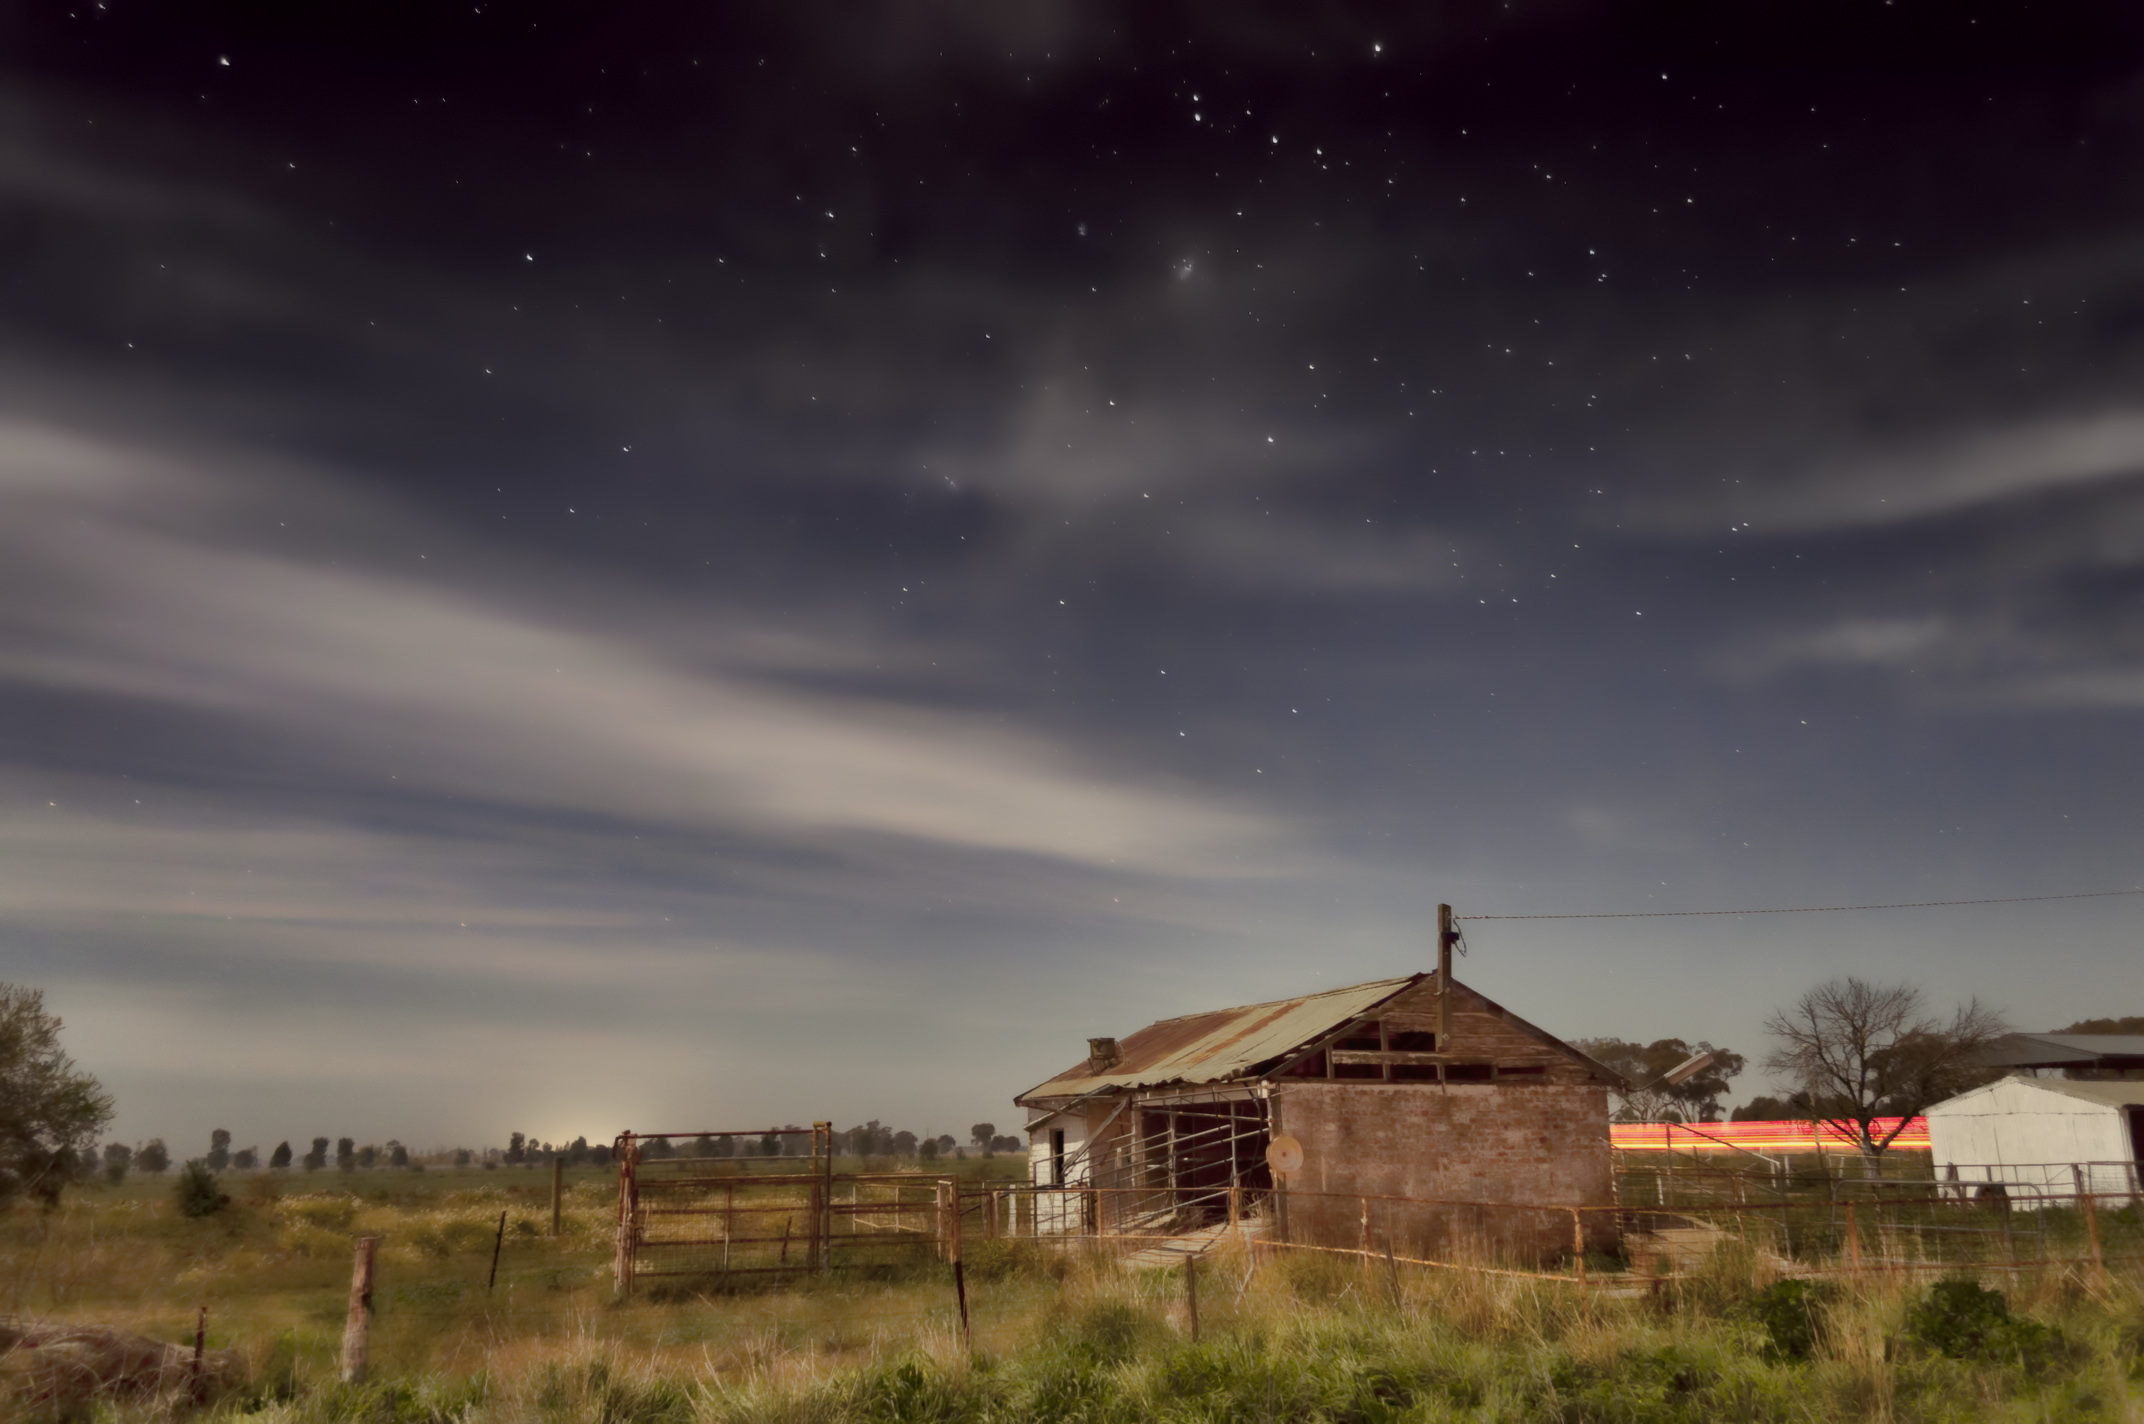 Old farm buildings in a pasture in the moonlight. Image is by Indigo Skies Photography